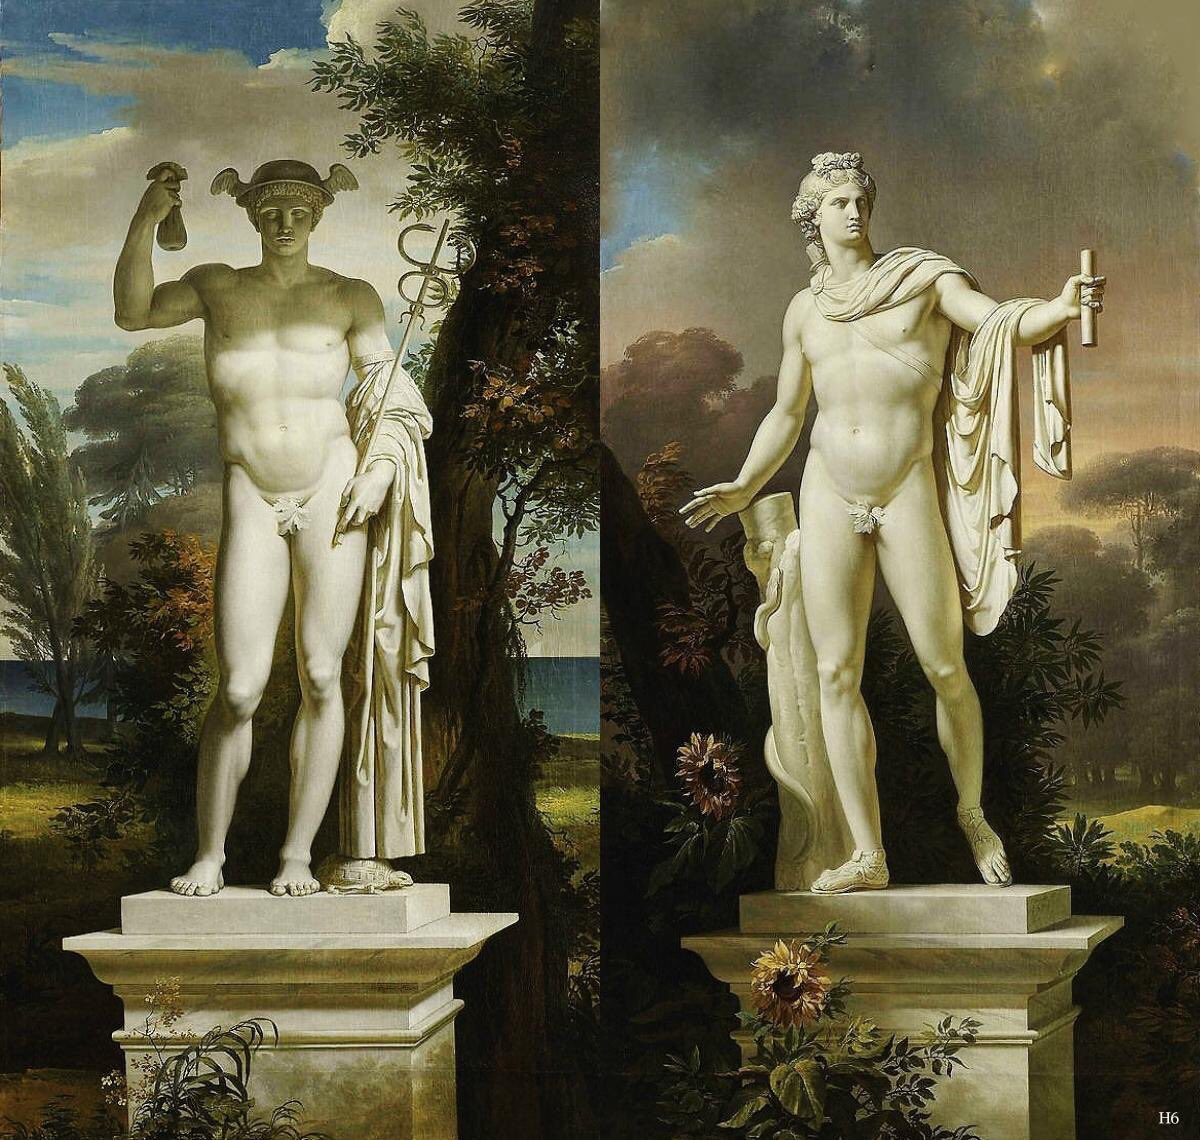 Charles Meynier, Statue of Mercury in a Landscape & Apollo Belvedere in a landscape. | PC: Wikimedia